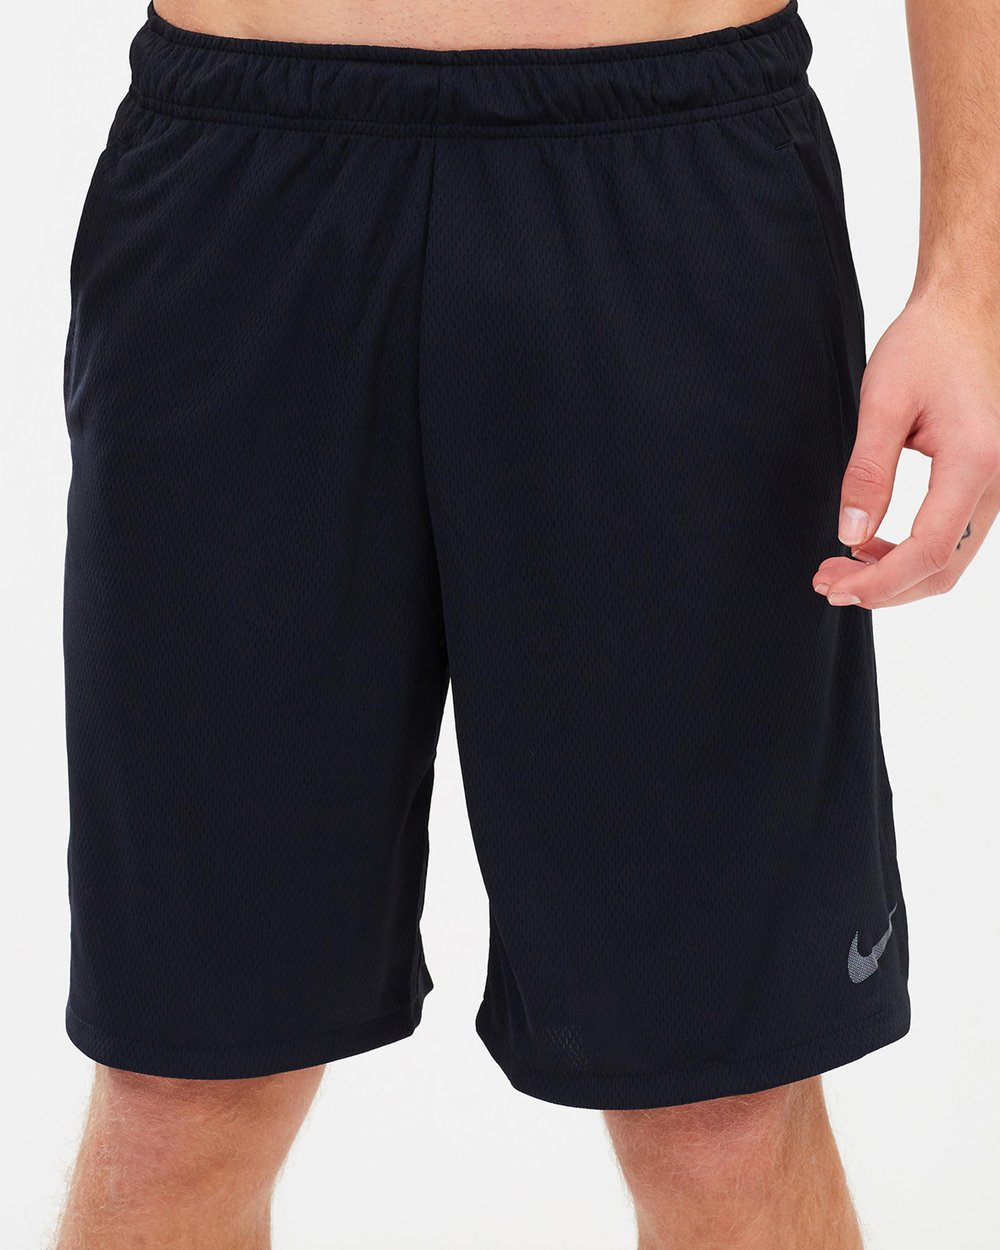 926cdbe5c Dri-FIT 4.0 Training Shorts by Nike Online | THE ICONIC | Australia